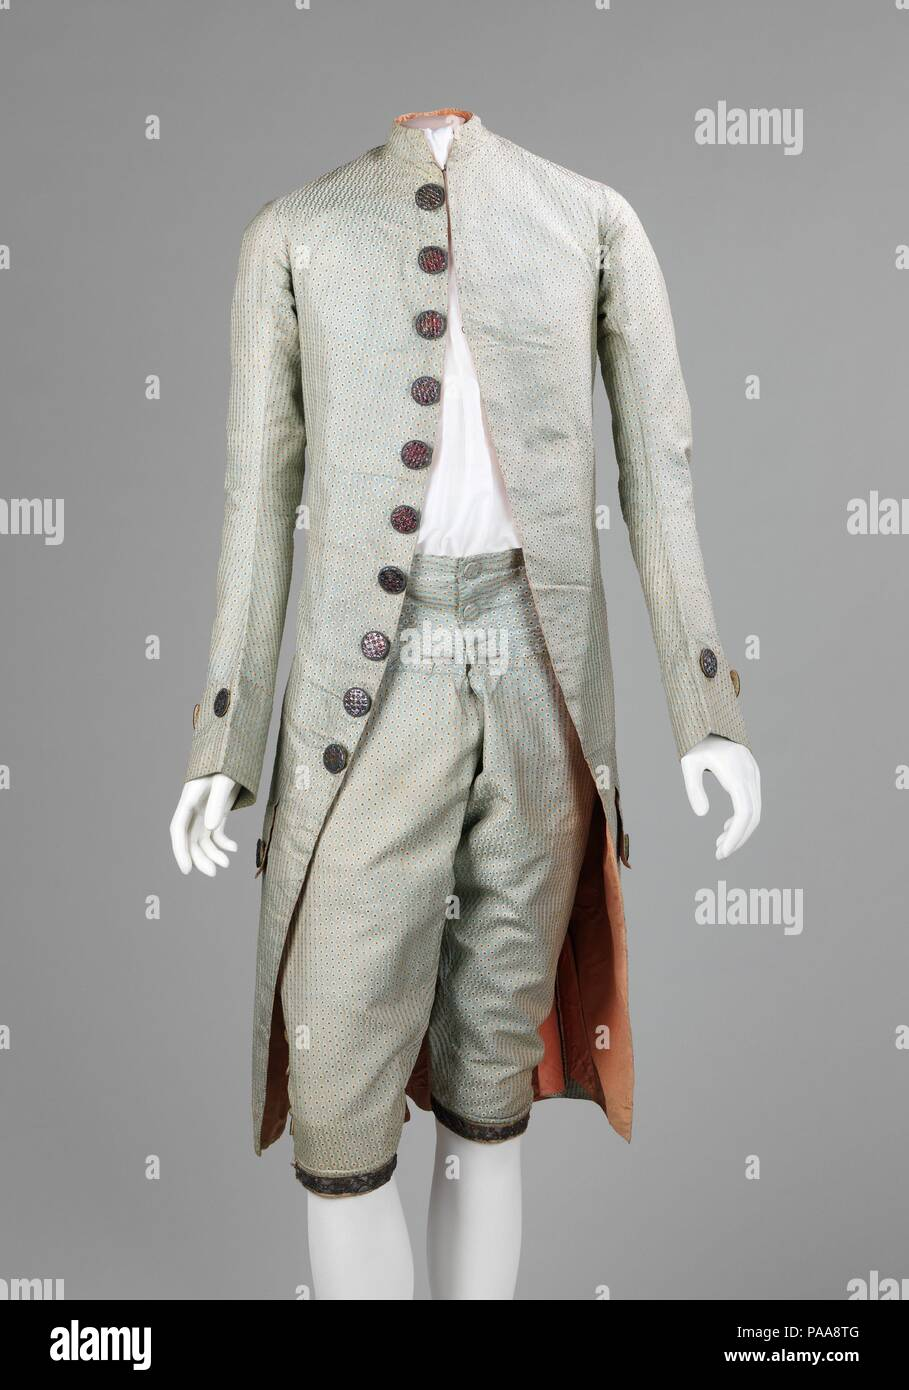 Suit Culture French Date 1765 75 The Distinctive Buttons On